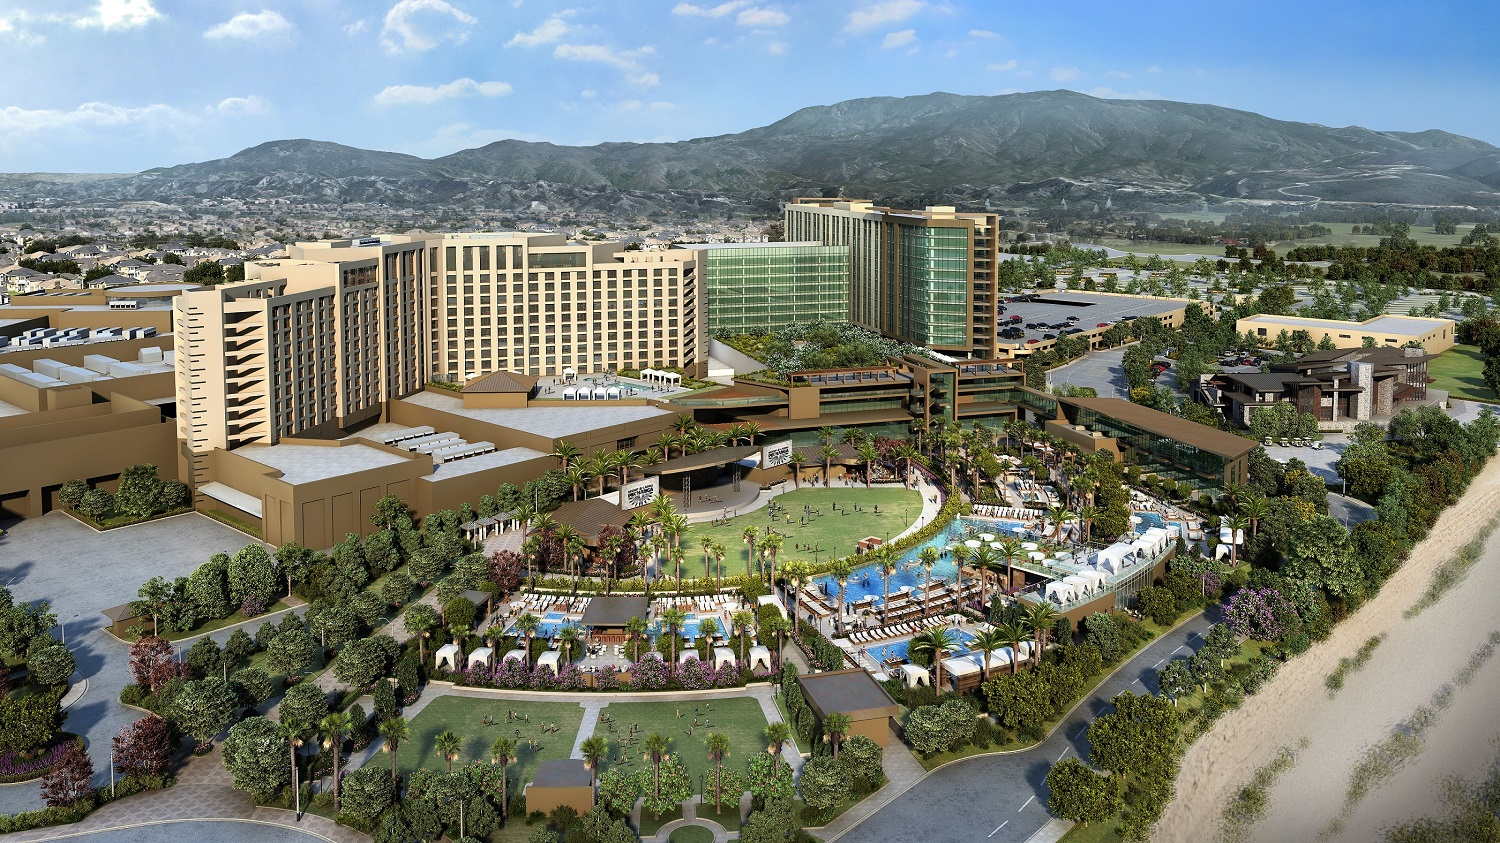 Pechanga Casino opts for new Scientific Games technology for gaming machines